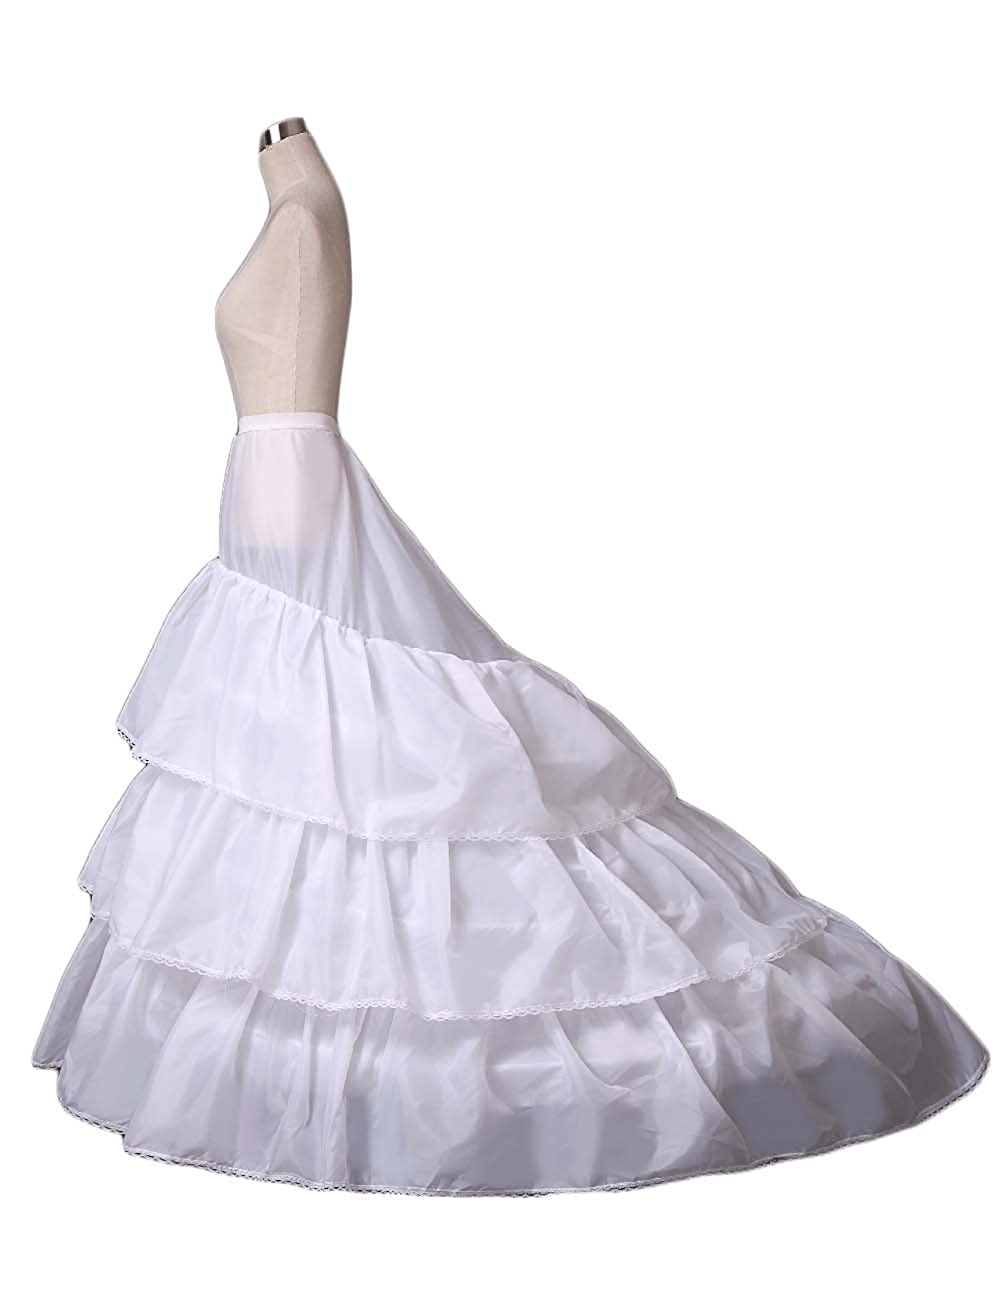 PromCC Womens A-line 3-Hoop Petticoat Skirt Crinoline Wedding Dress Train 9007